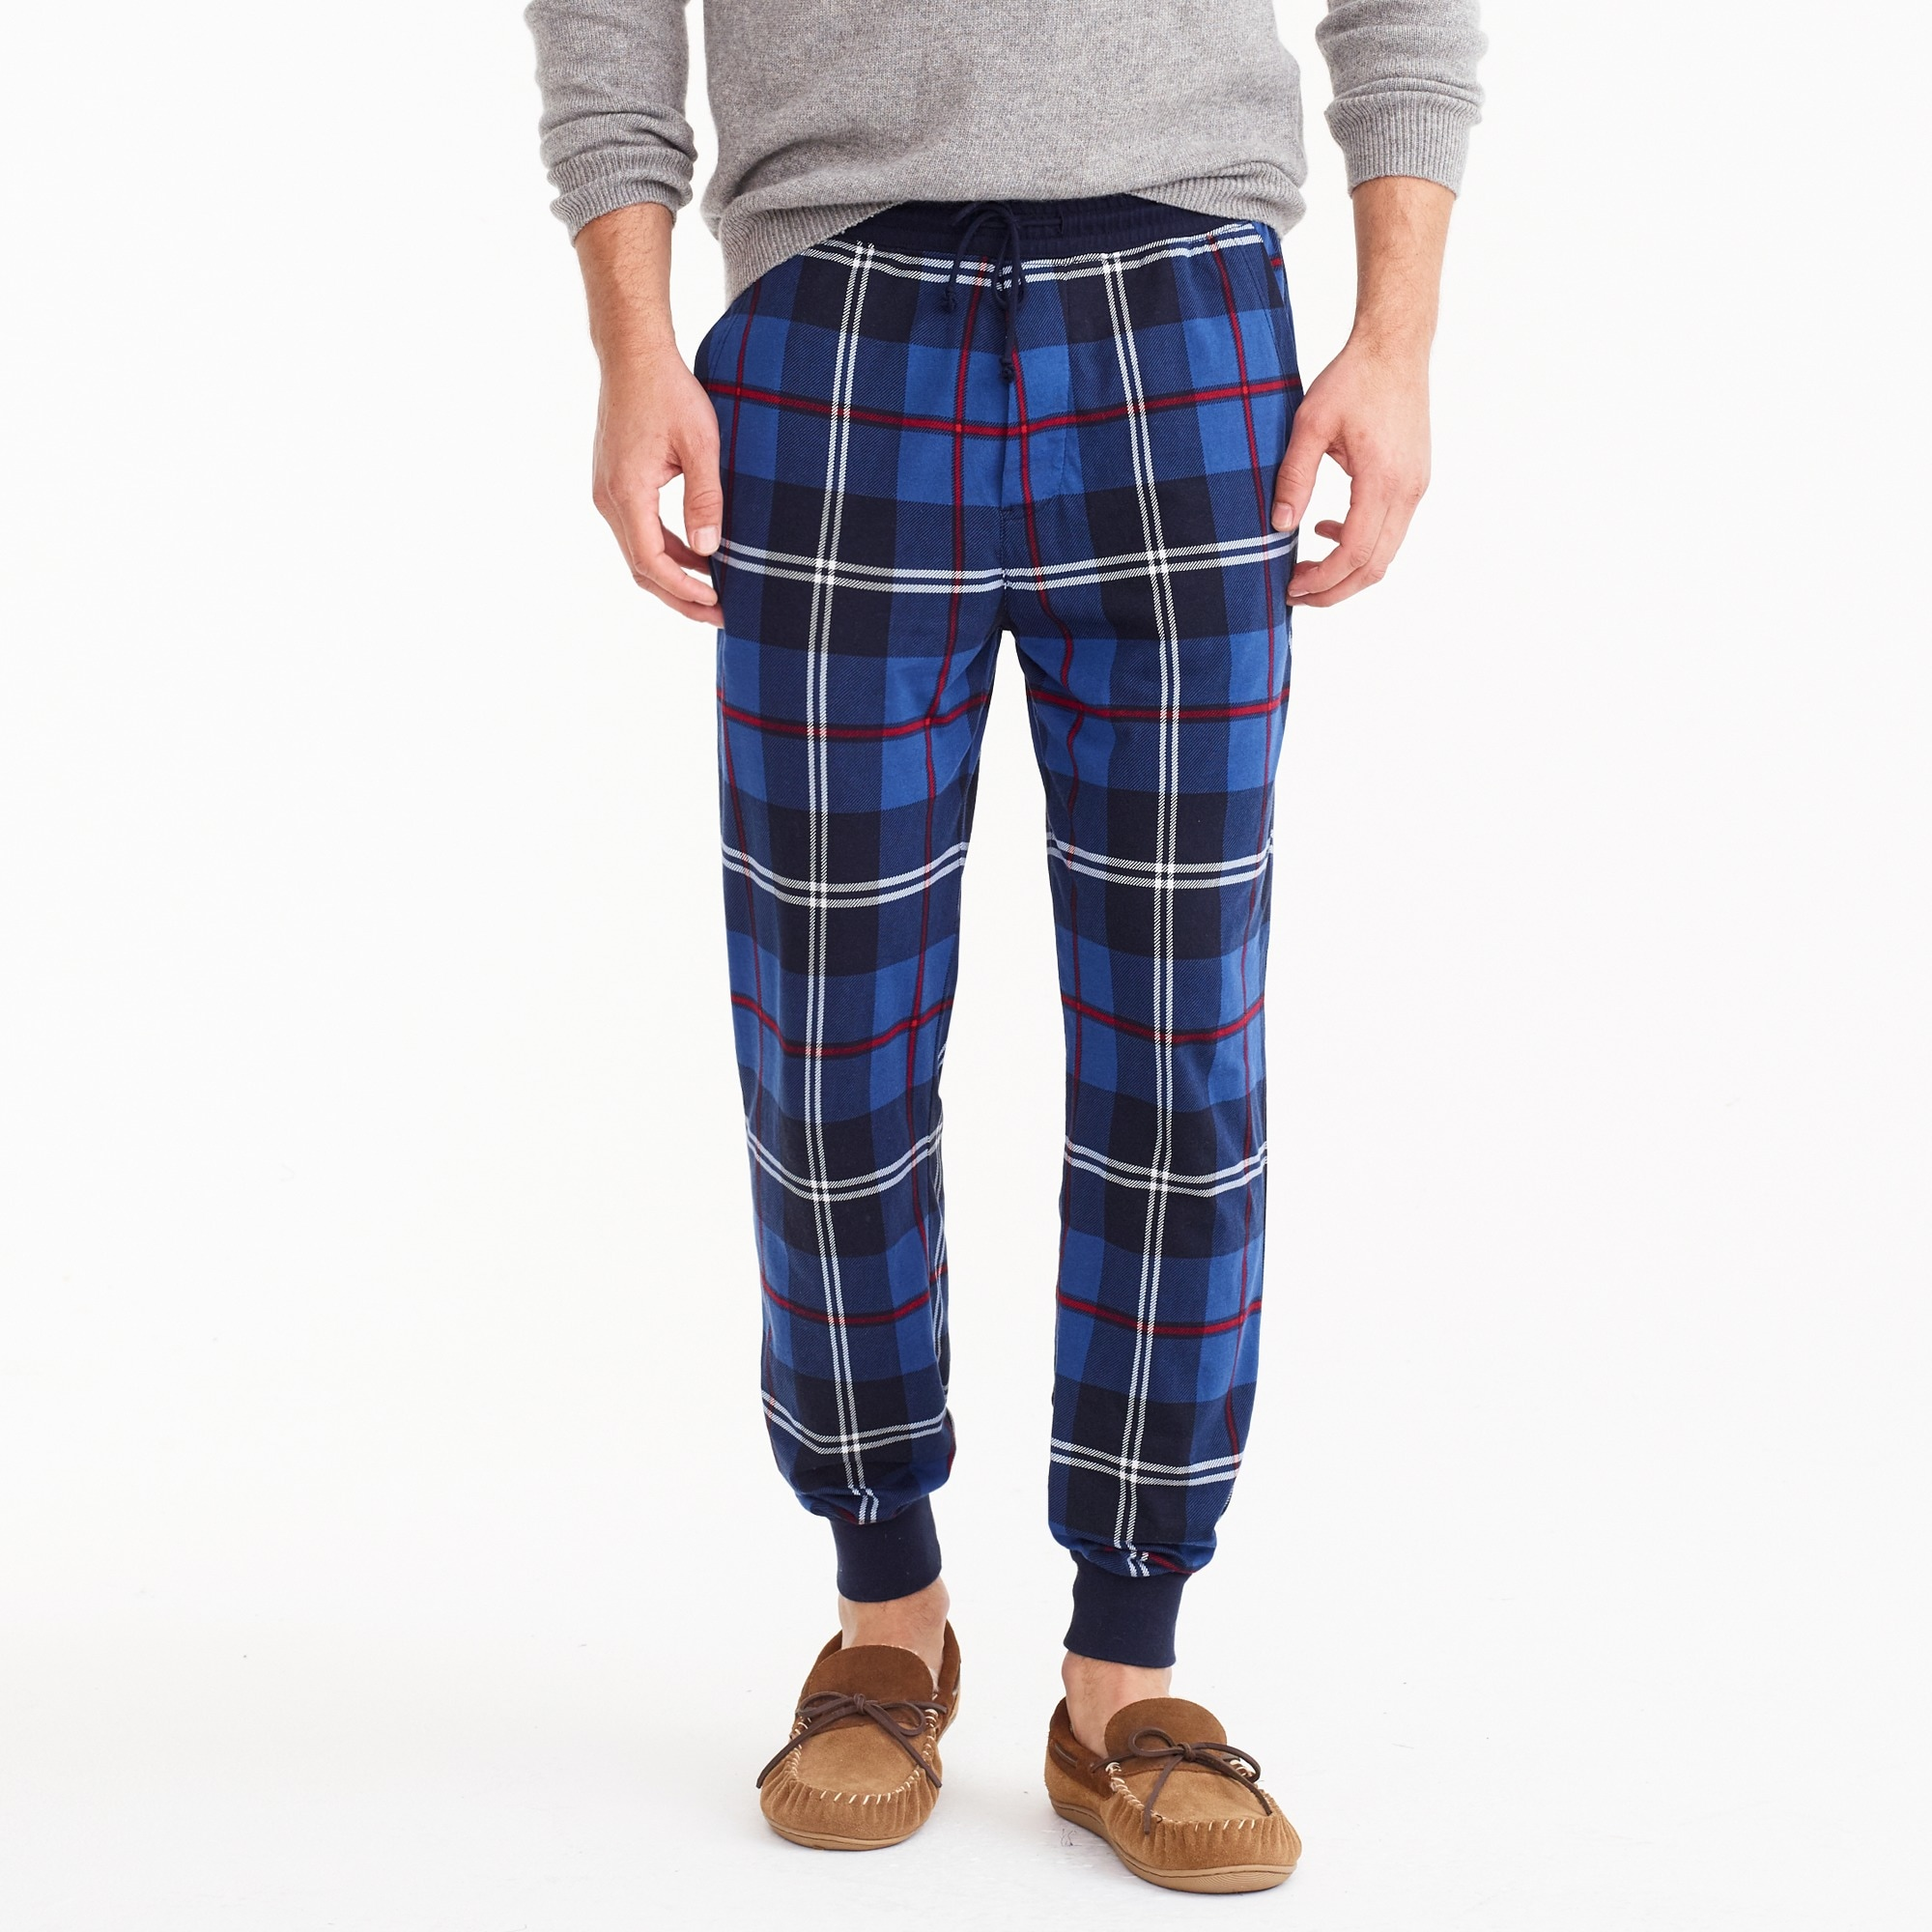 Image 1 for Flannel lounge pant